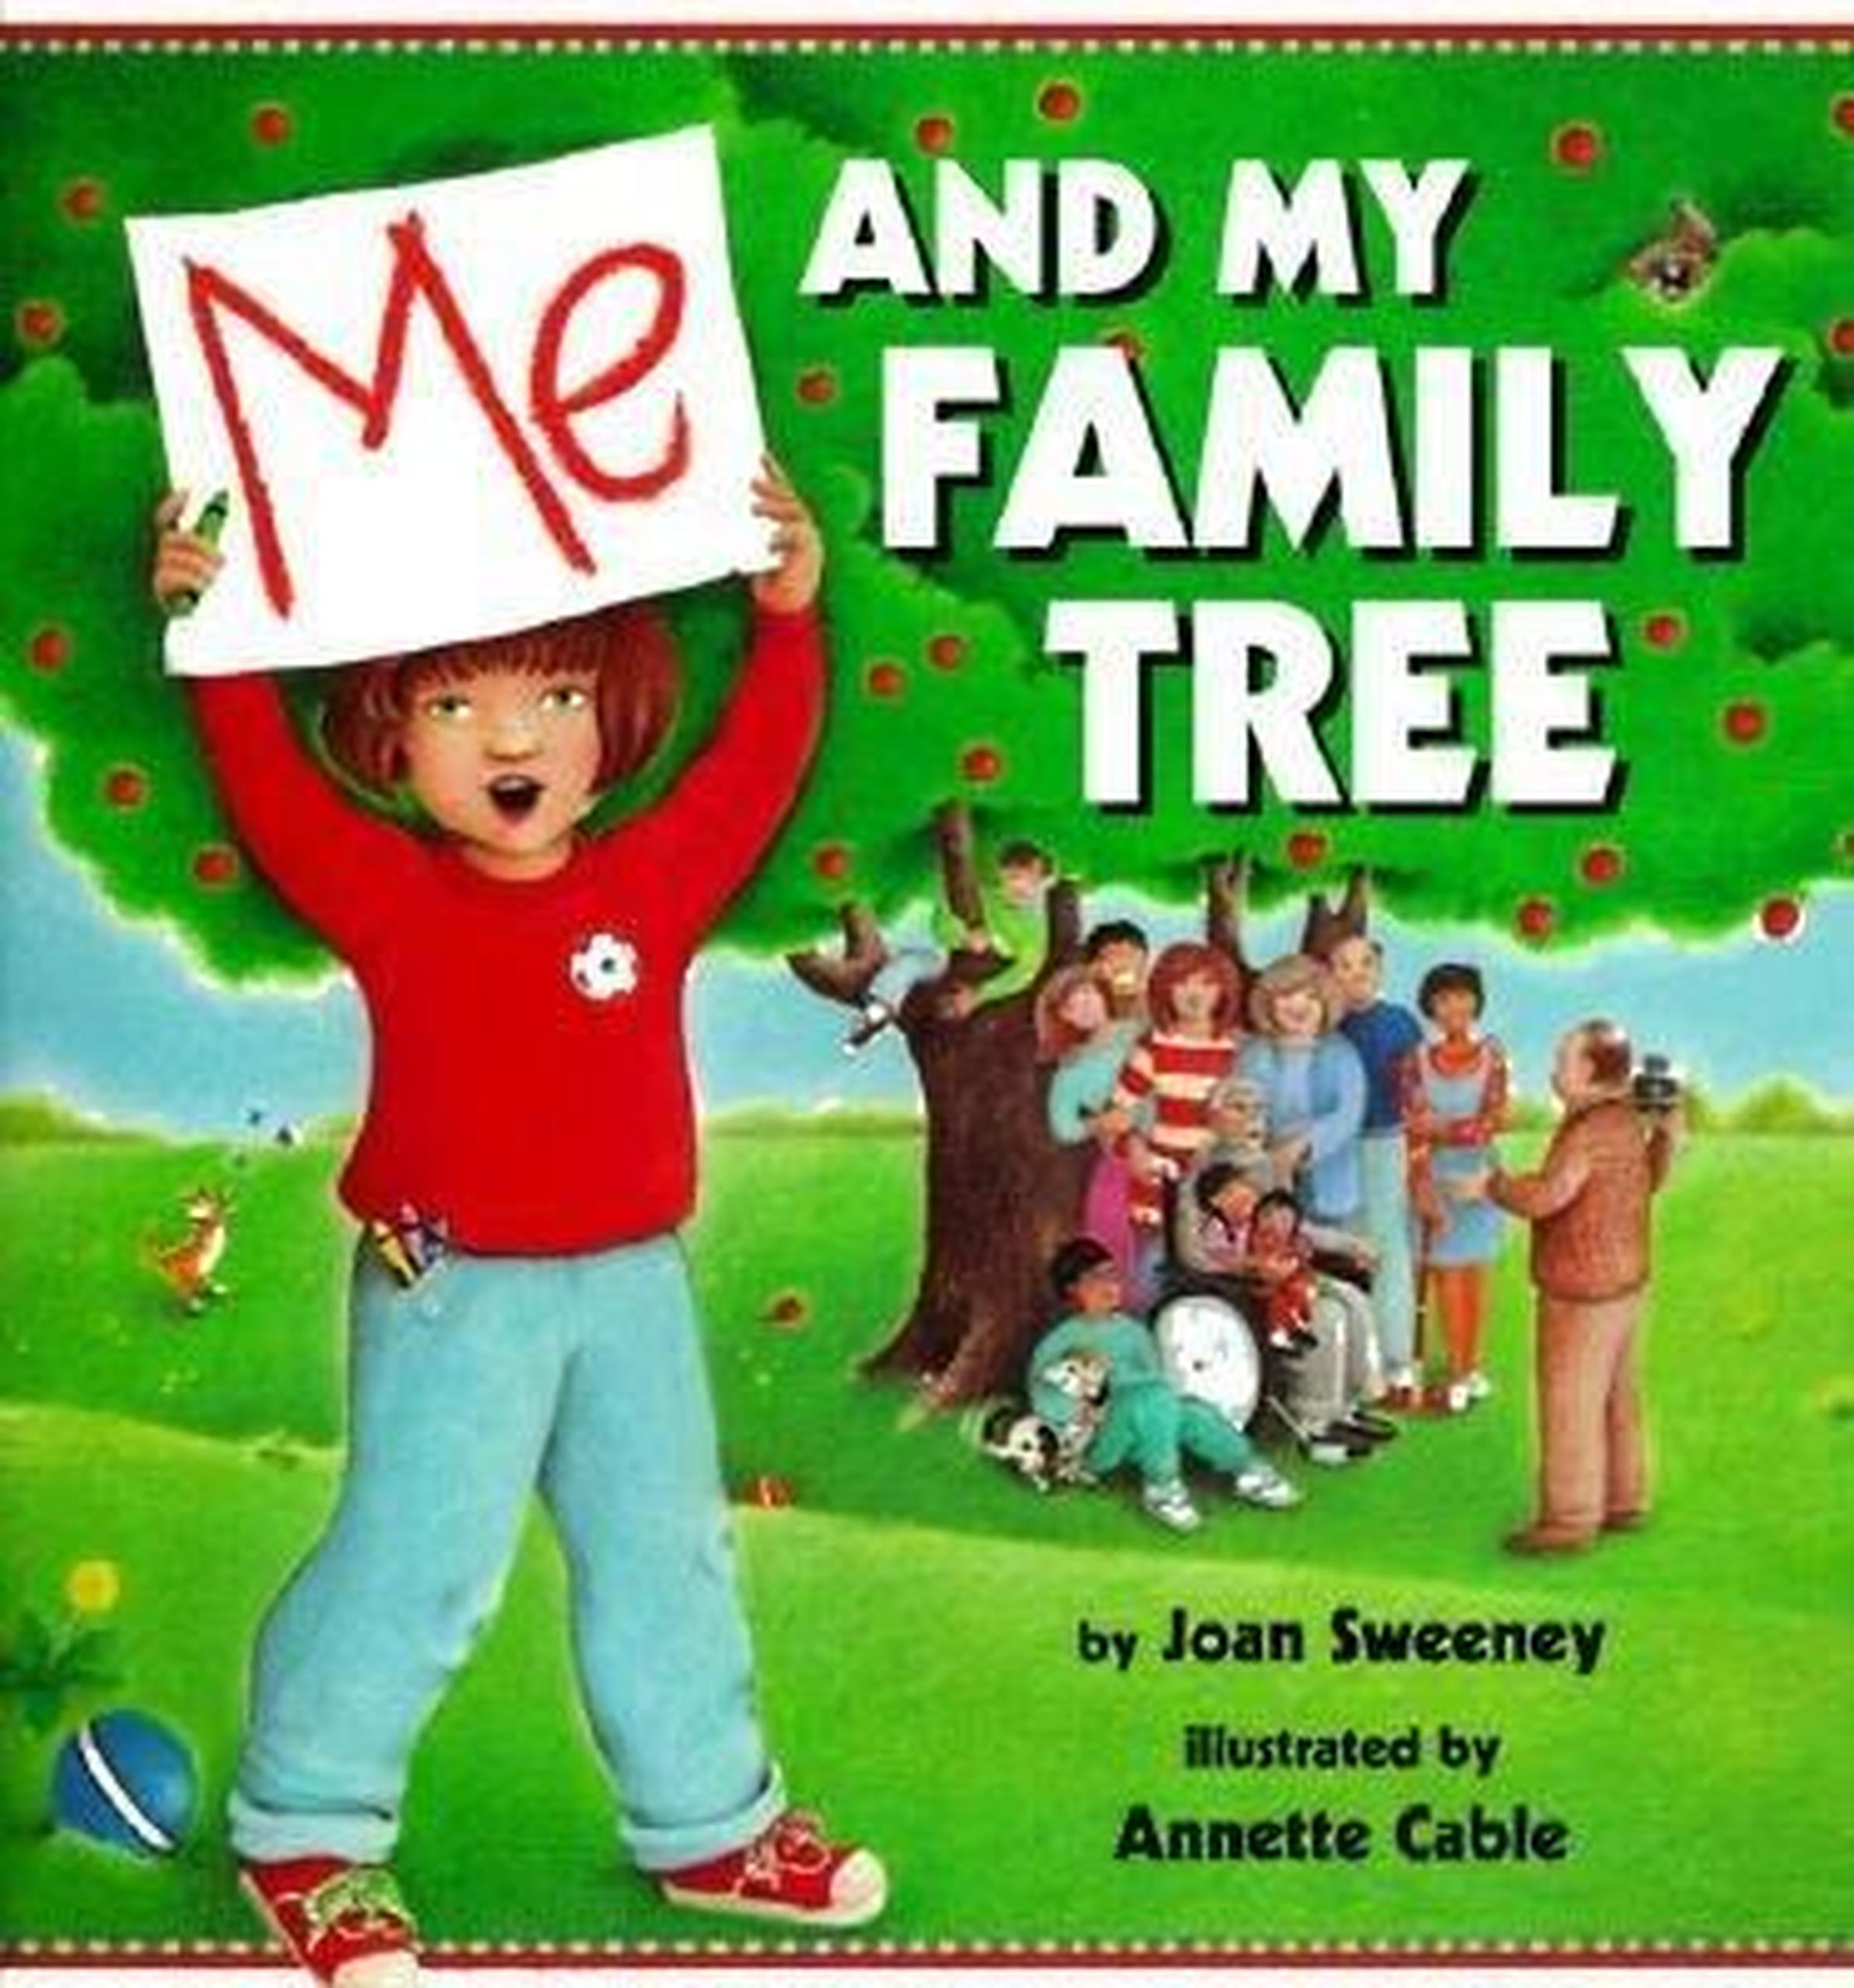 Image result for me and my family tree book